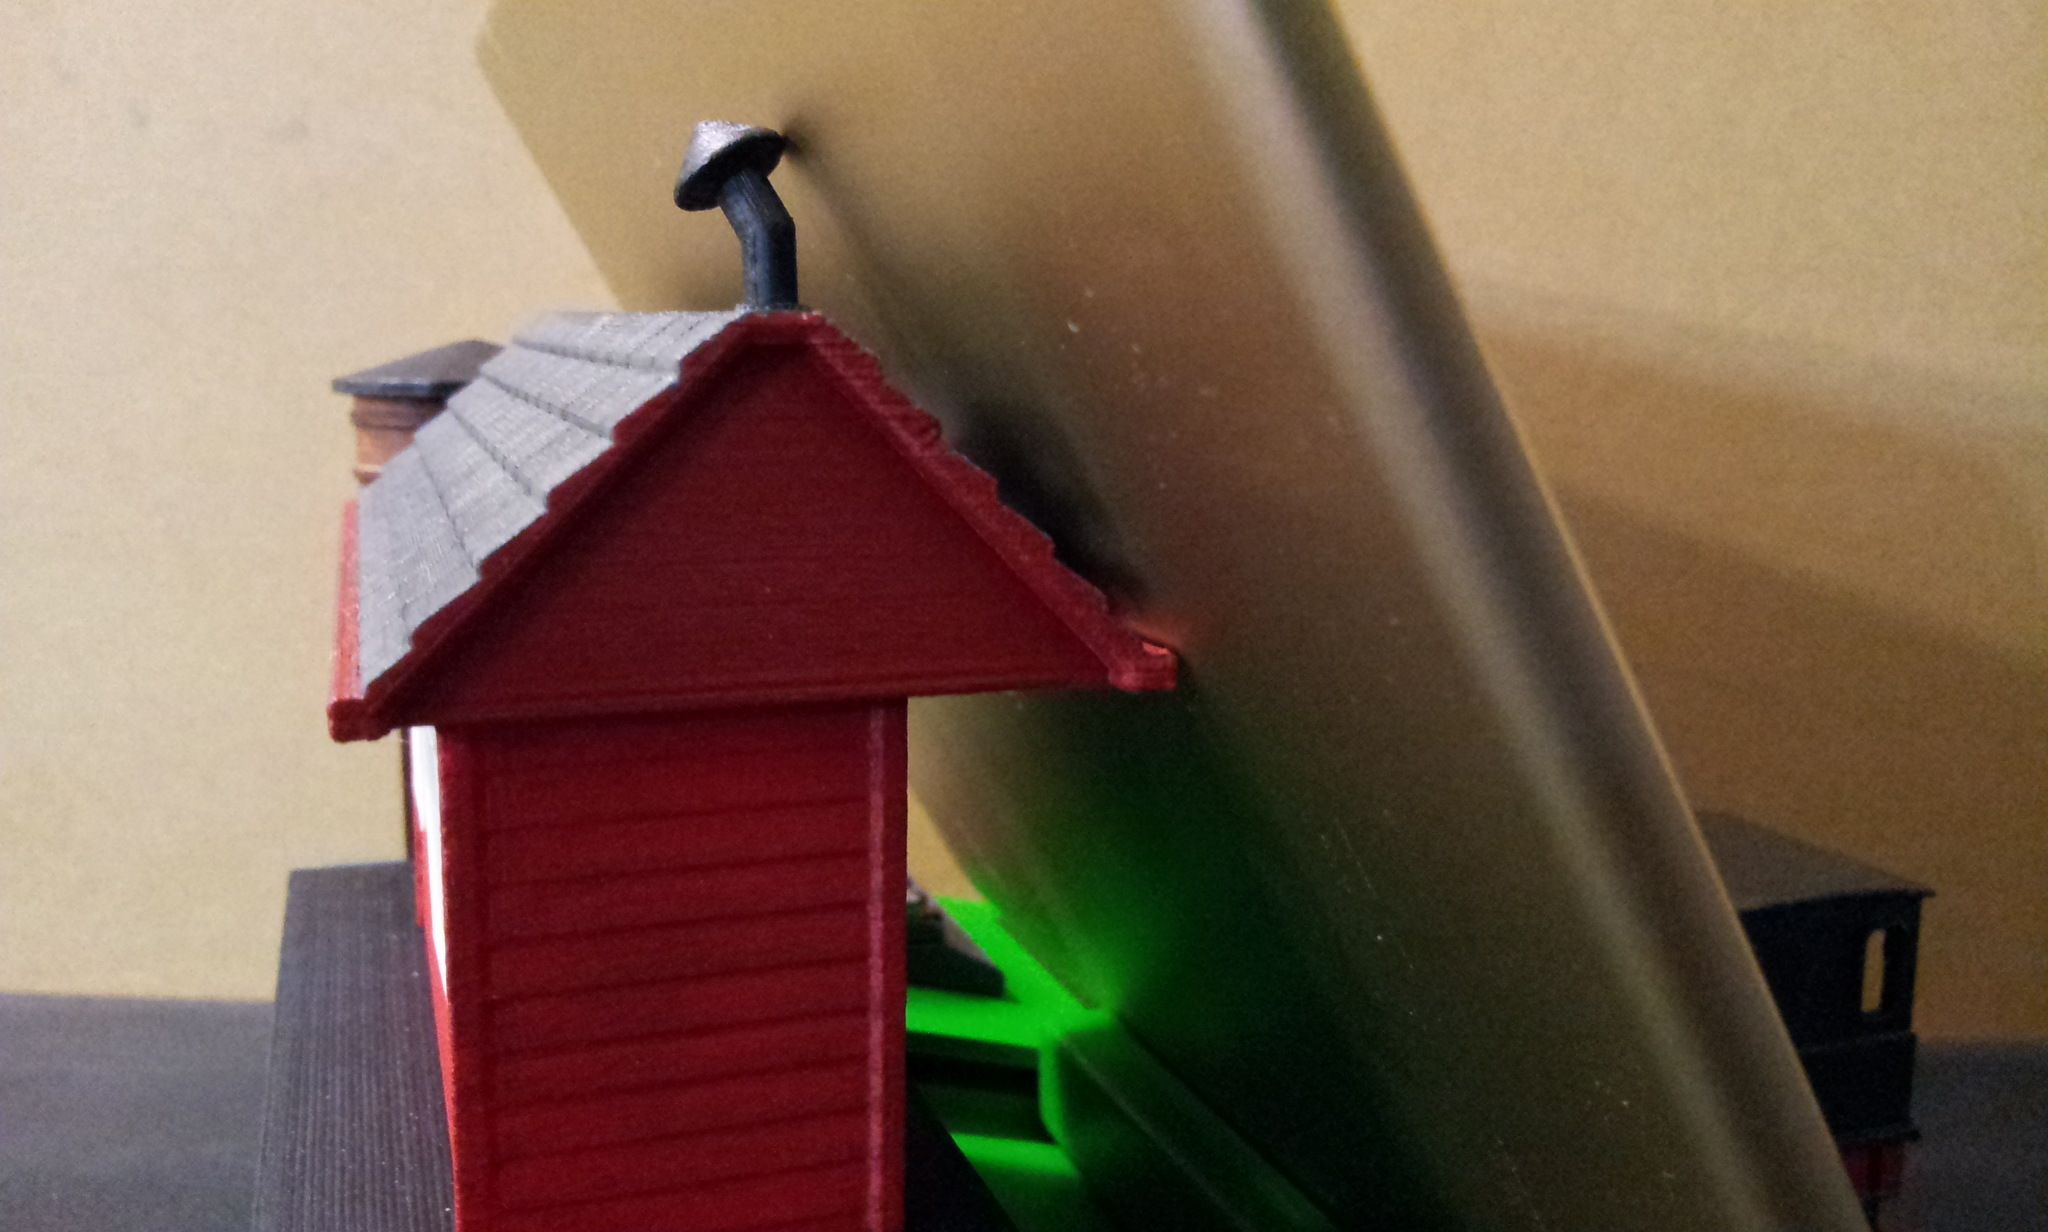 20150502_164210.jpg Download free STL file IPAD STAND (STEAM ENGINE) • 3D printing object, cmtm